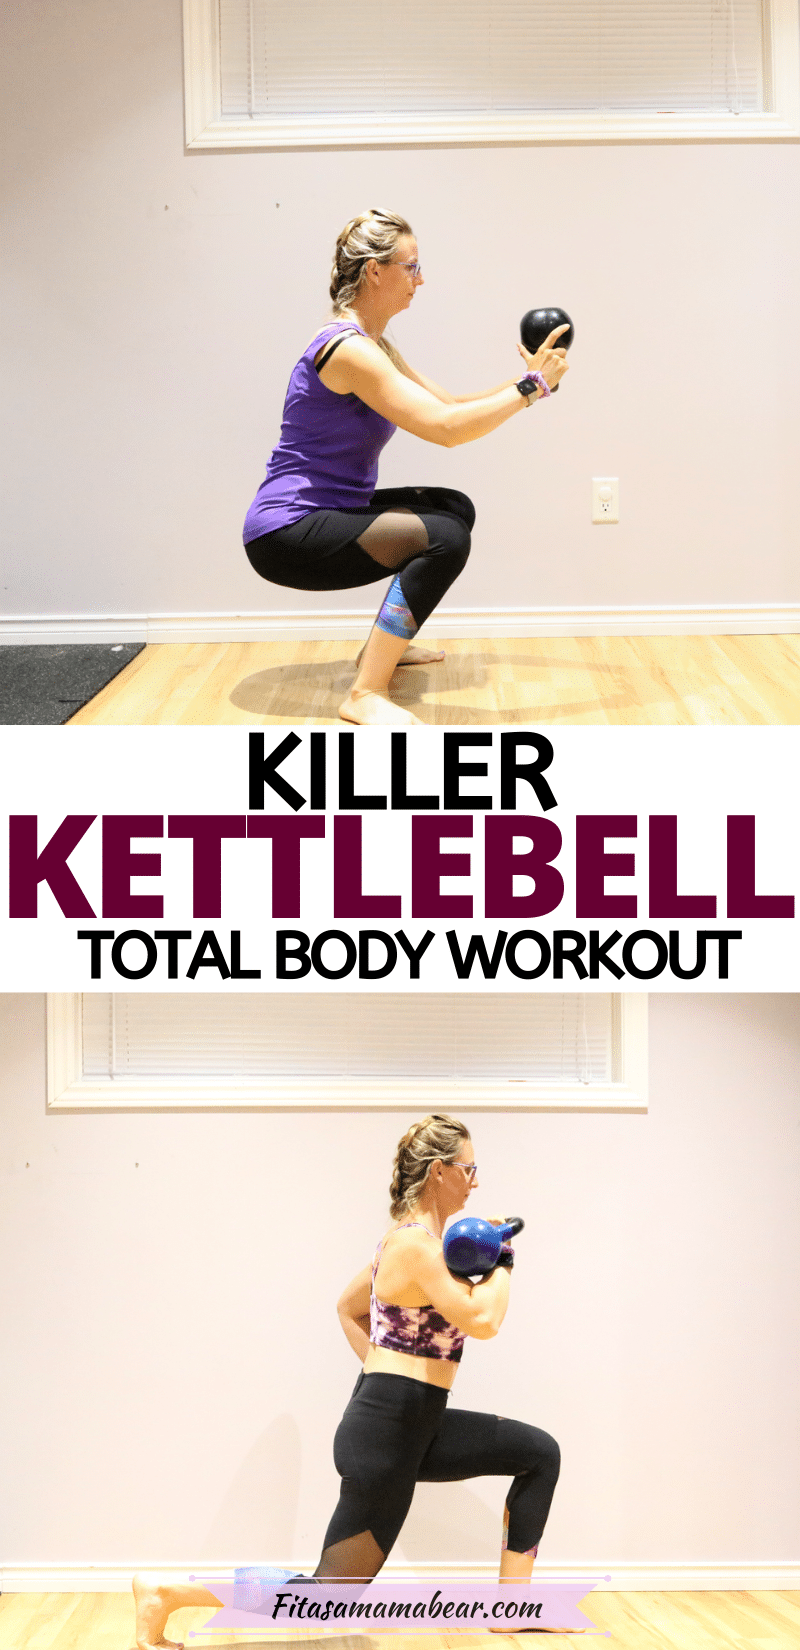 Pinterest image with text: two images of a female doing exercises with a kettlebell